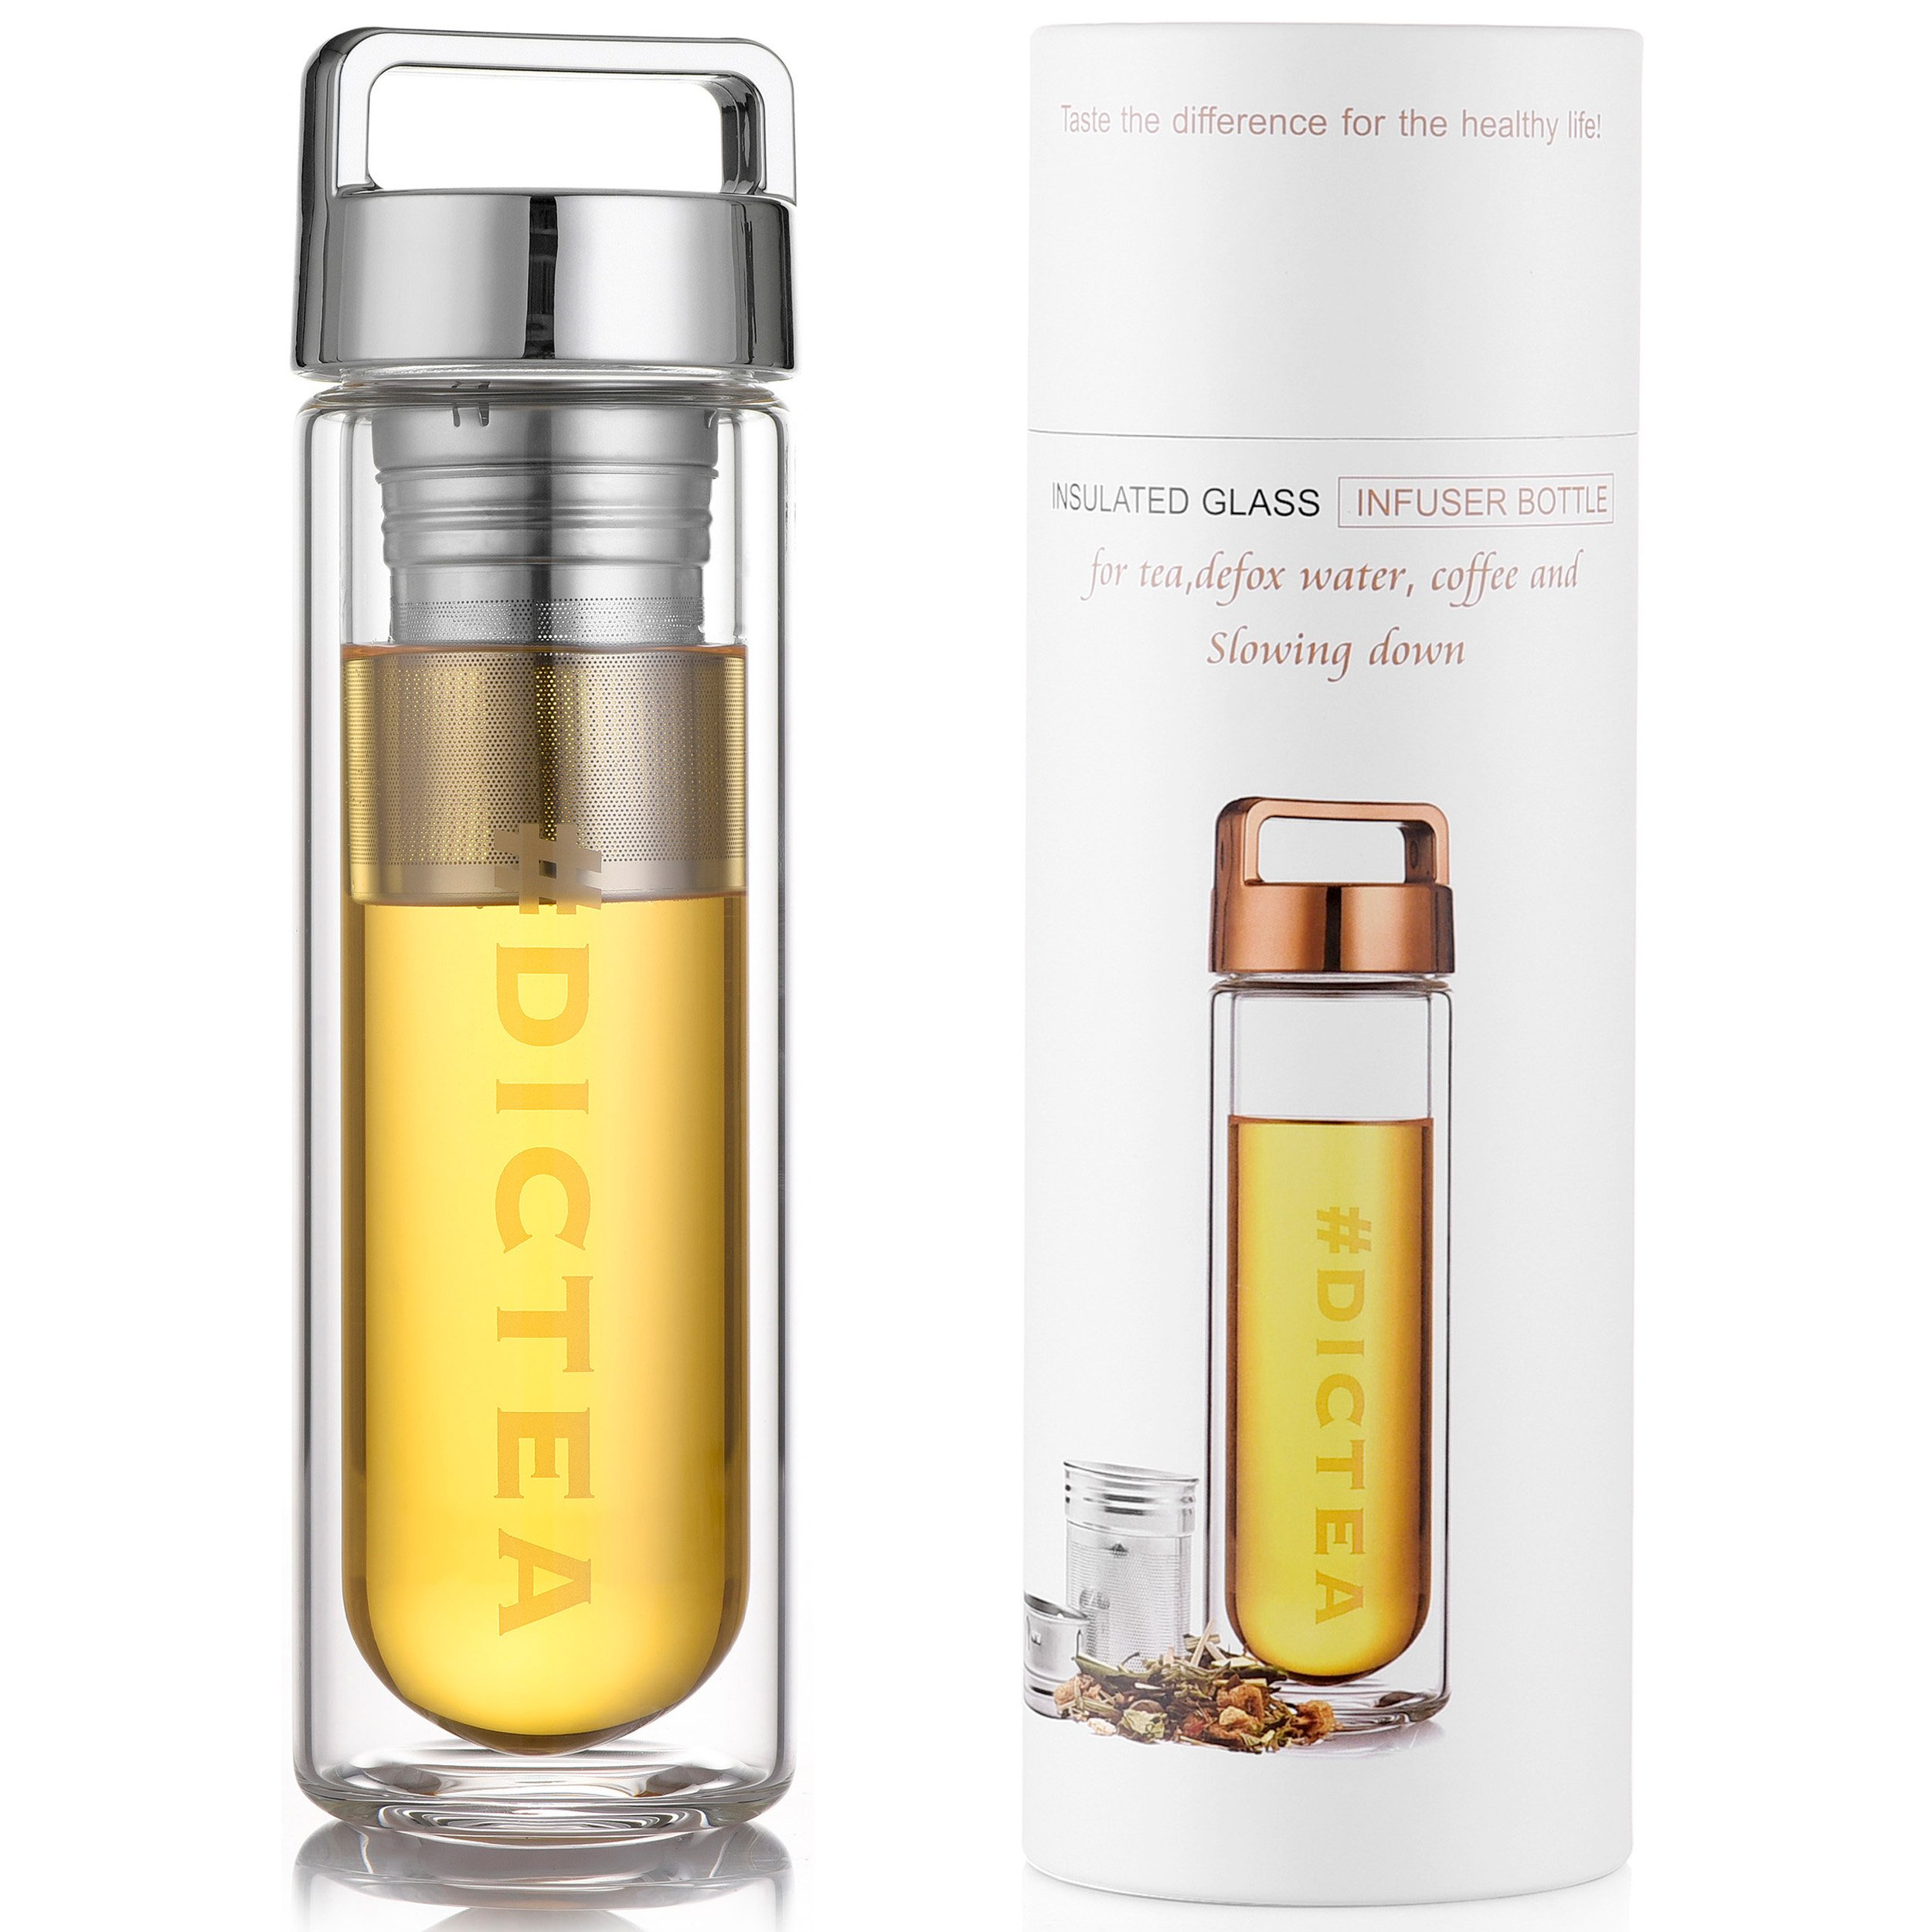 Tea Infuser Bottle For Your Favorite Loose Leaf Tea, Tea Bags, Cold Brew Coffee or Fruits - The Pefect Gift Idea For Women   Enjoy Your Favorite Drink Everywhere You Go   Beautifully Packaged